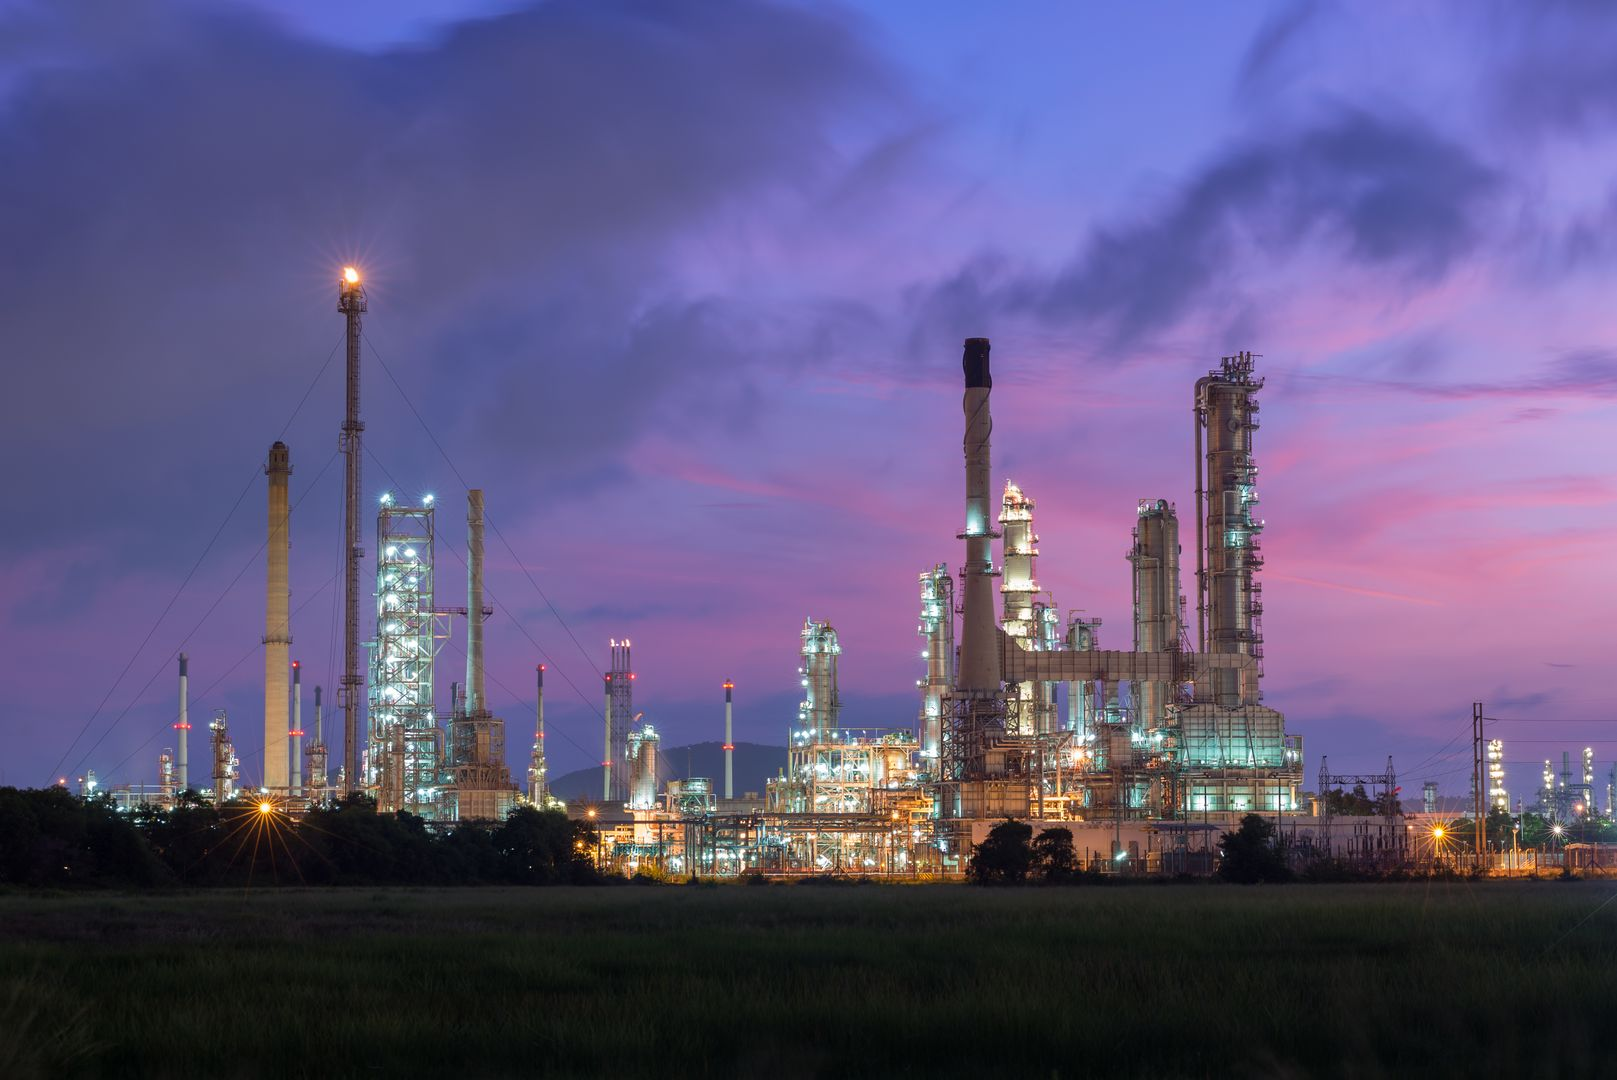 Refineries And Distillation Plants